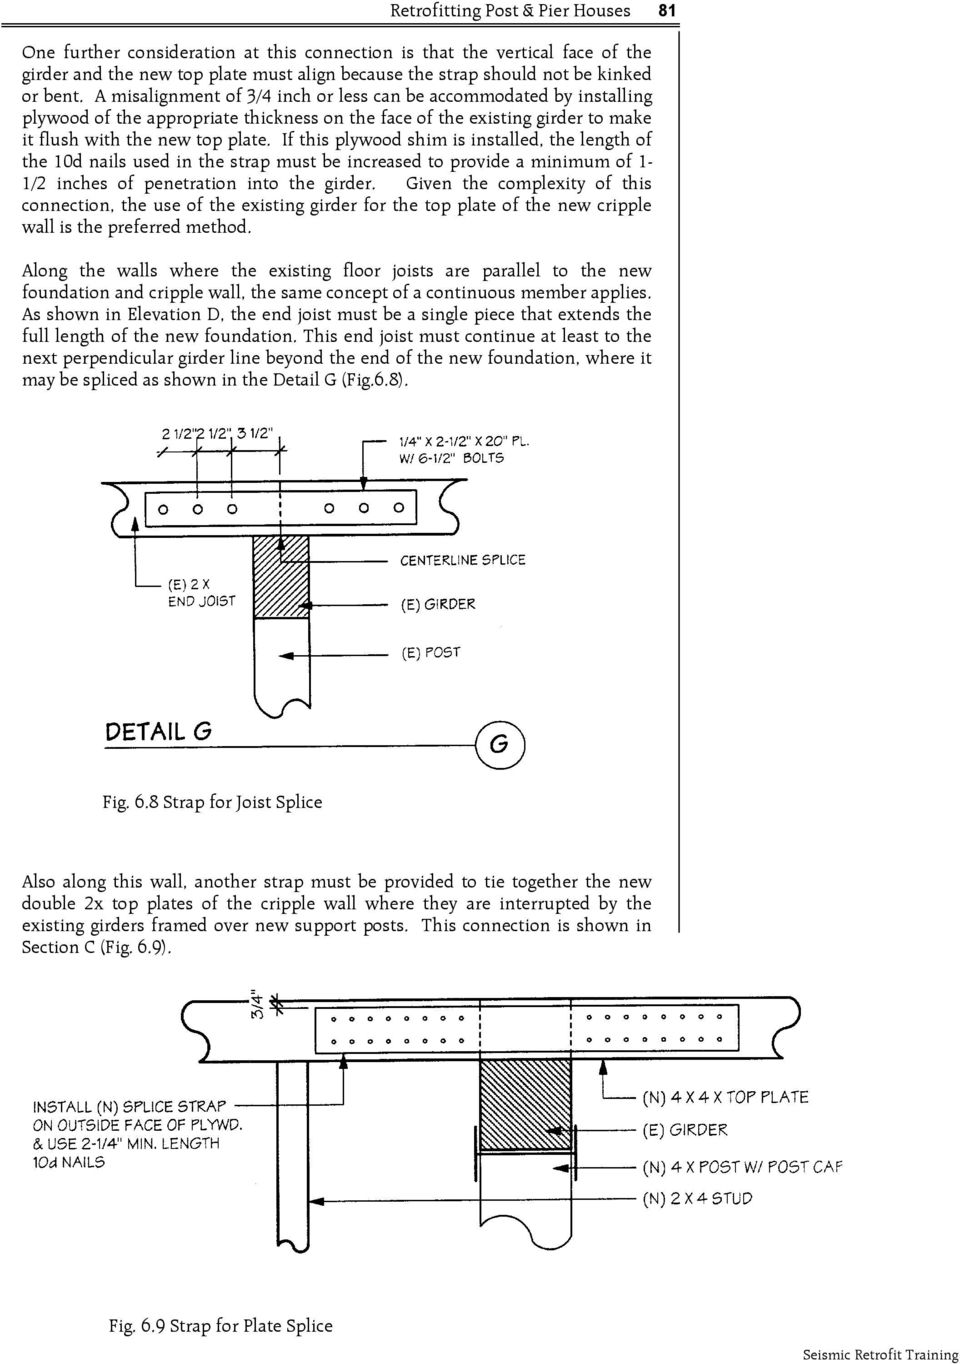 If this plywood shim is installed, the length of the 10d nails used in the strap must be increased to provide a minimum of 1-1/2 inches of penetration into the girder.